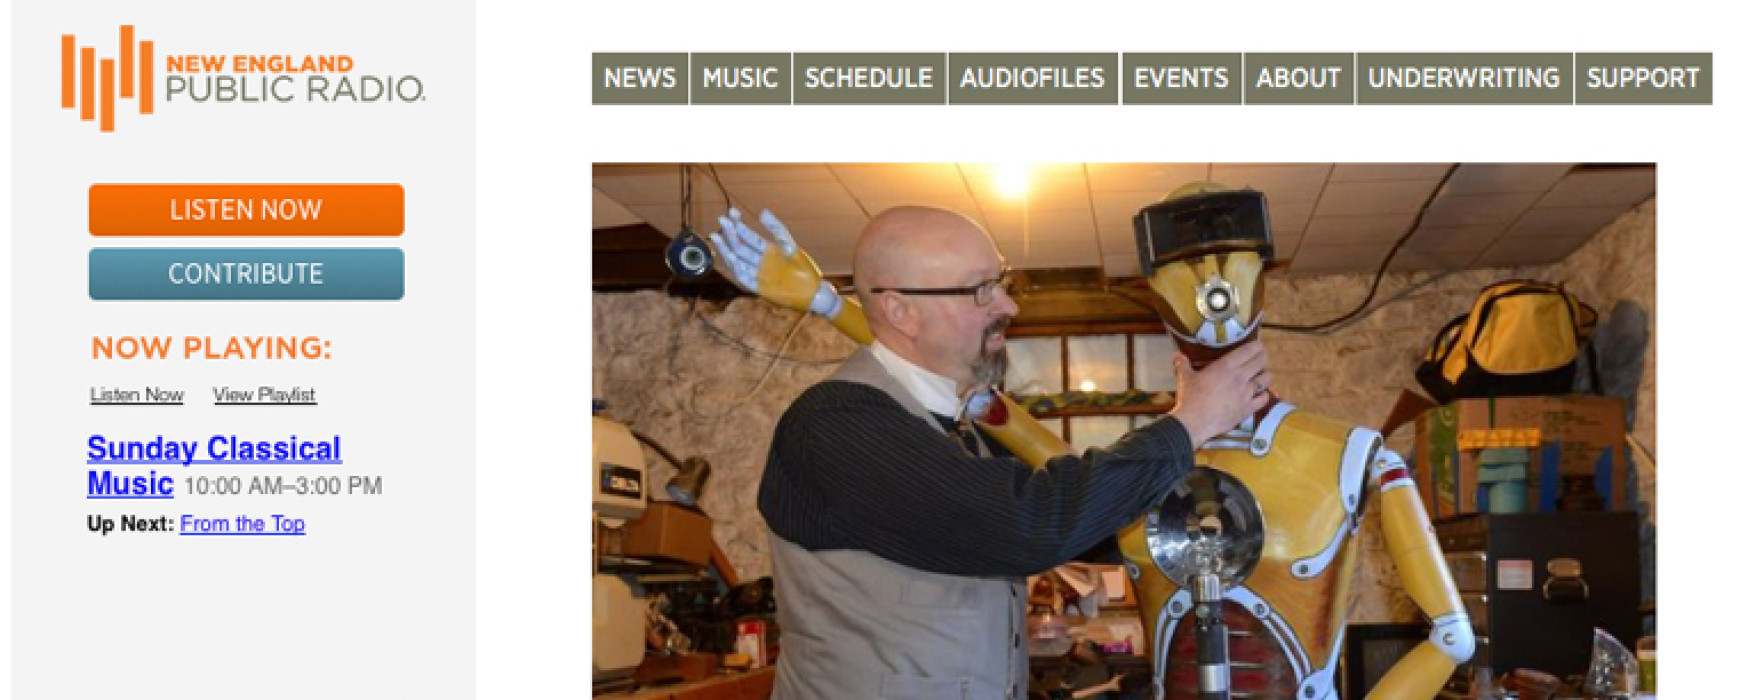 NEPR: An Ode to 19th and 20th Century Ingenuity Via Steampunk Springfield